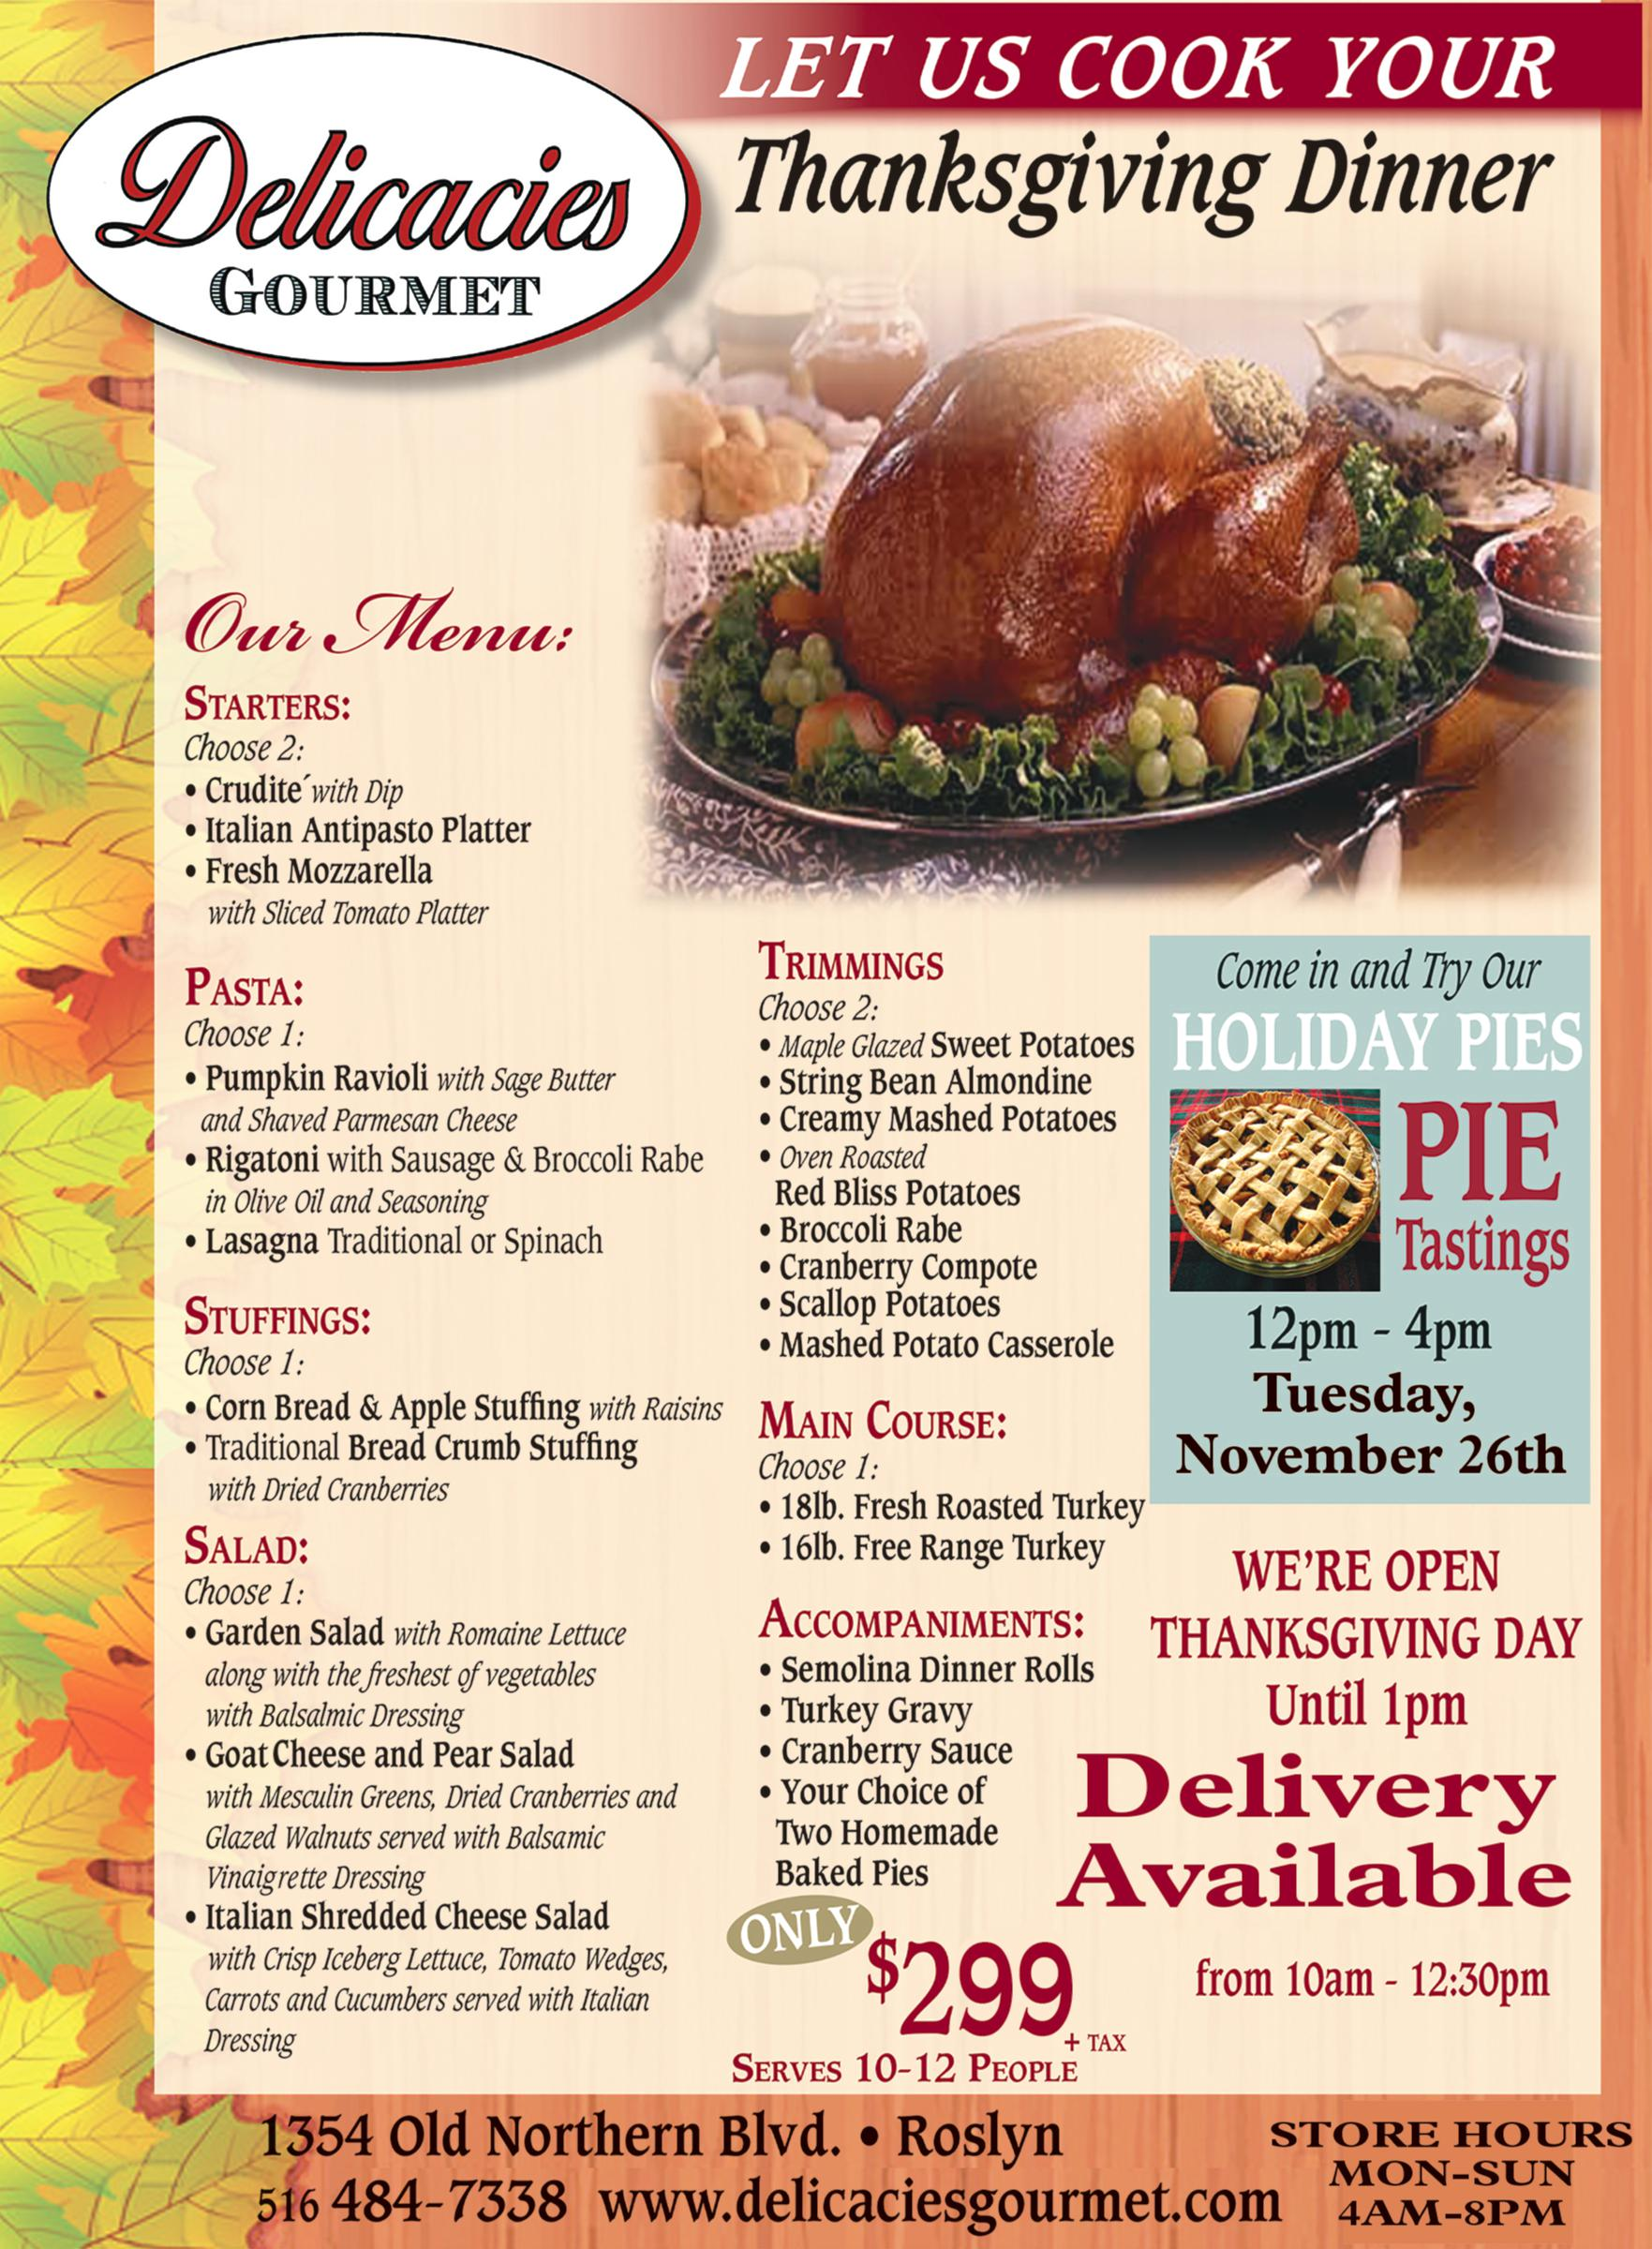 Delicacies Gourmet.  Let Us Cook Your Thanksgiving Dinner.  Our Menu. Starters. Choose 2: Crudite with dip, Italian Antipasto Platter, Fresh Mozzarella with Sliced Tomato Platter.  Pasta. Choose 1: Pumpkin ravioli with sage butter and shave parmesan cheese, rigatoni with sausage and broccoli rabe in olive oil and seasoning, lasagna traditional or spinach.  Stuffings. Choose 1: Corn bread & apple stuffing with raisins, Traditional bread crumb stuffing with dried cranberries.  Salad. Choose 1: Garden salad with romaine lettuce along with the freshest of vegetables with balsamic dressing, Goat cheese and pear salad with mesclun greens, dried cranberries and glazed walnuts served with balsamic vinaigrette dressing, Italian shredded cheese salad with crisp iceberg lettuce, tomato wedges, carrots and cucumbers served with italian dressing.  Trimmings. Choose 2: maple glazed sweet potatoes, string beans almondine, creamy mashed potatoes, oven-roasted red bliss potatoes, broccoli rabe, cranberry compote, scallop potatoes, mashed potato casserole.  Main Course. Choose 1: 18 lb. fresh roasted turkey, 16 lb. free range turkey.  Accompaniments: semolina dinner rolls, turkey gravy, cranberry sauce, your choice of 2 homemade baked pies.  Only $299 + tax. serves 10-12 people.  Come in and try our holiday pies. Pie tastings 12pm-4pm Tuesday, November 26th.  We're open Thanksgiving day until 1pm. Delivery available from 10am-12:30pm.  1354 Old Northern Blvd, Roslyn 516-484-7338 www.delicaciesgourmet.com store hours mon-sun 4am-8pm.